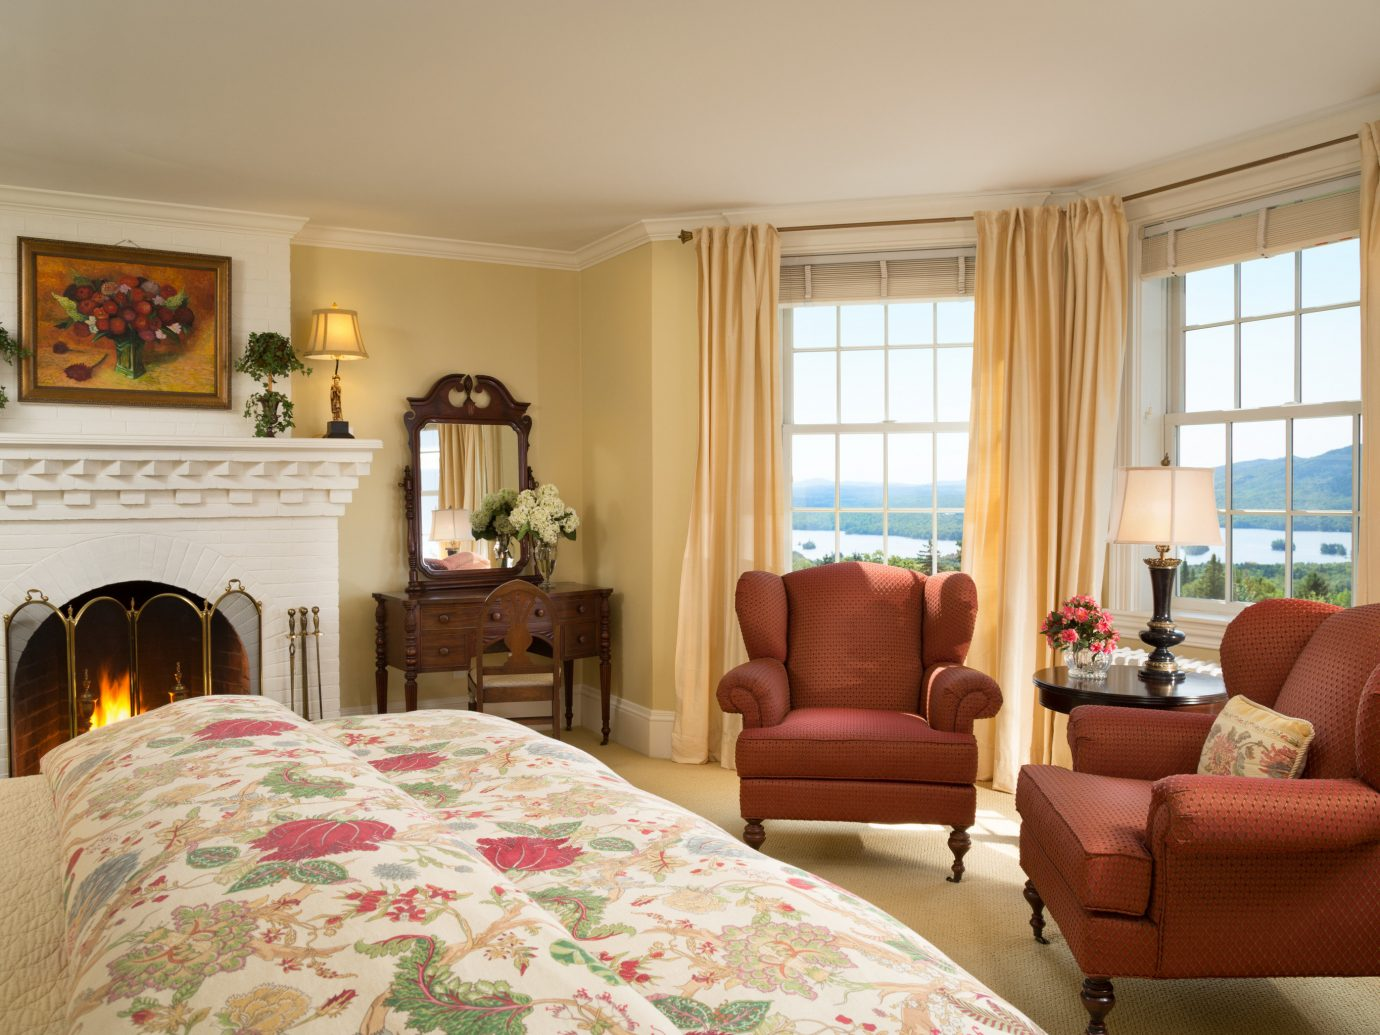 Hotels Lakes + Rivers Romance indoor window room wall floor property living room ceiling bed Living home estate interior design real estate Suite Bedroom hardwood cottage apartment decorated furniture area